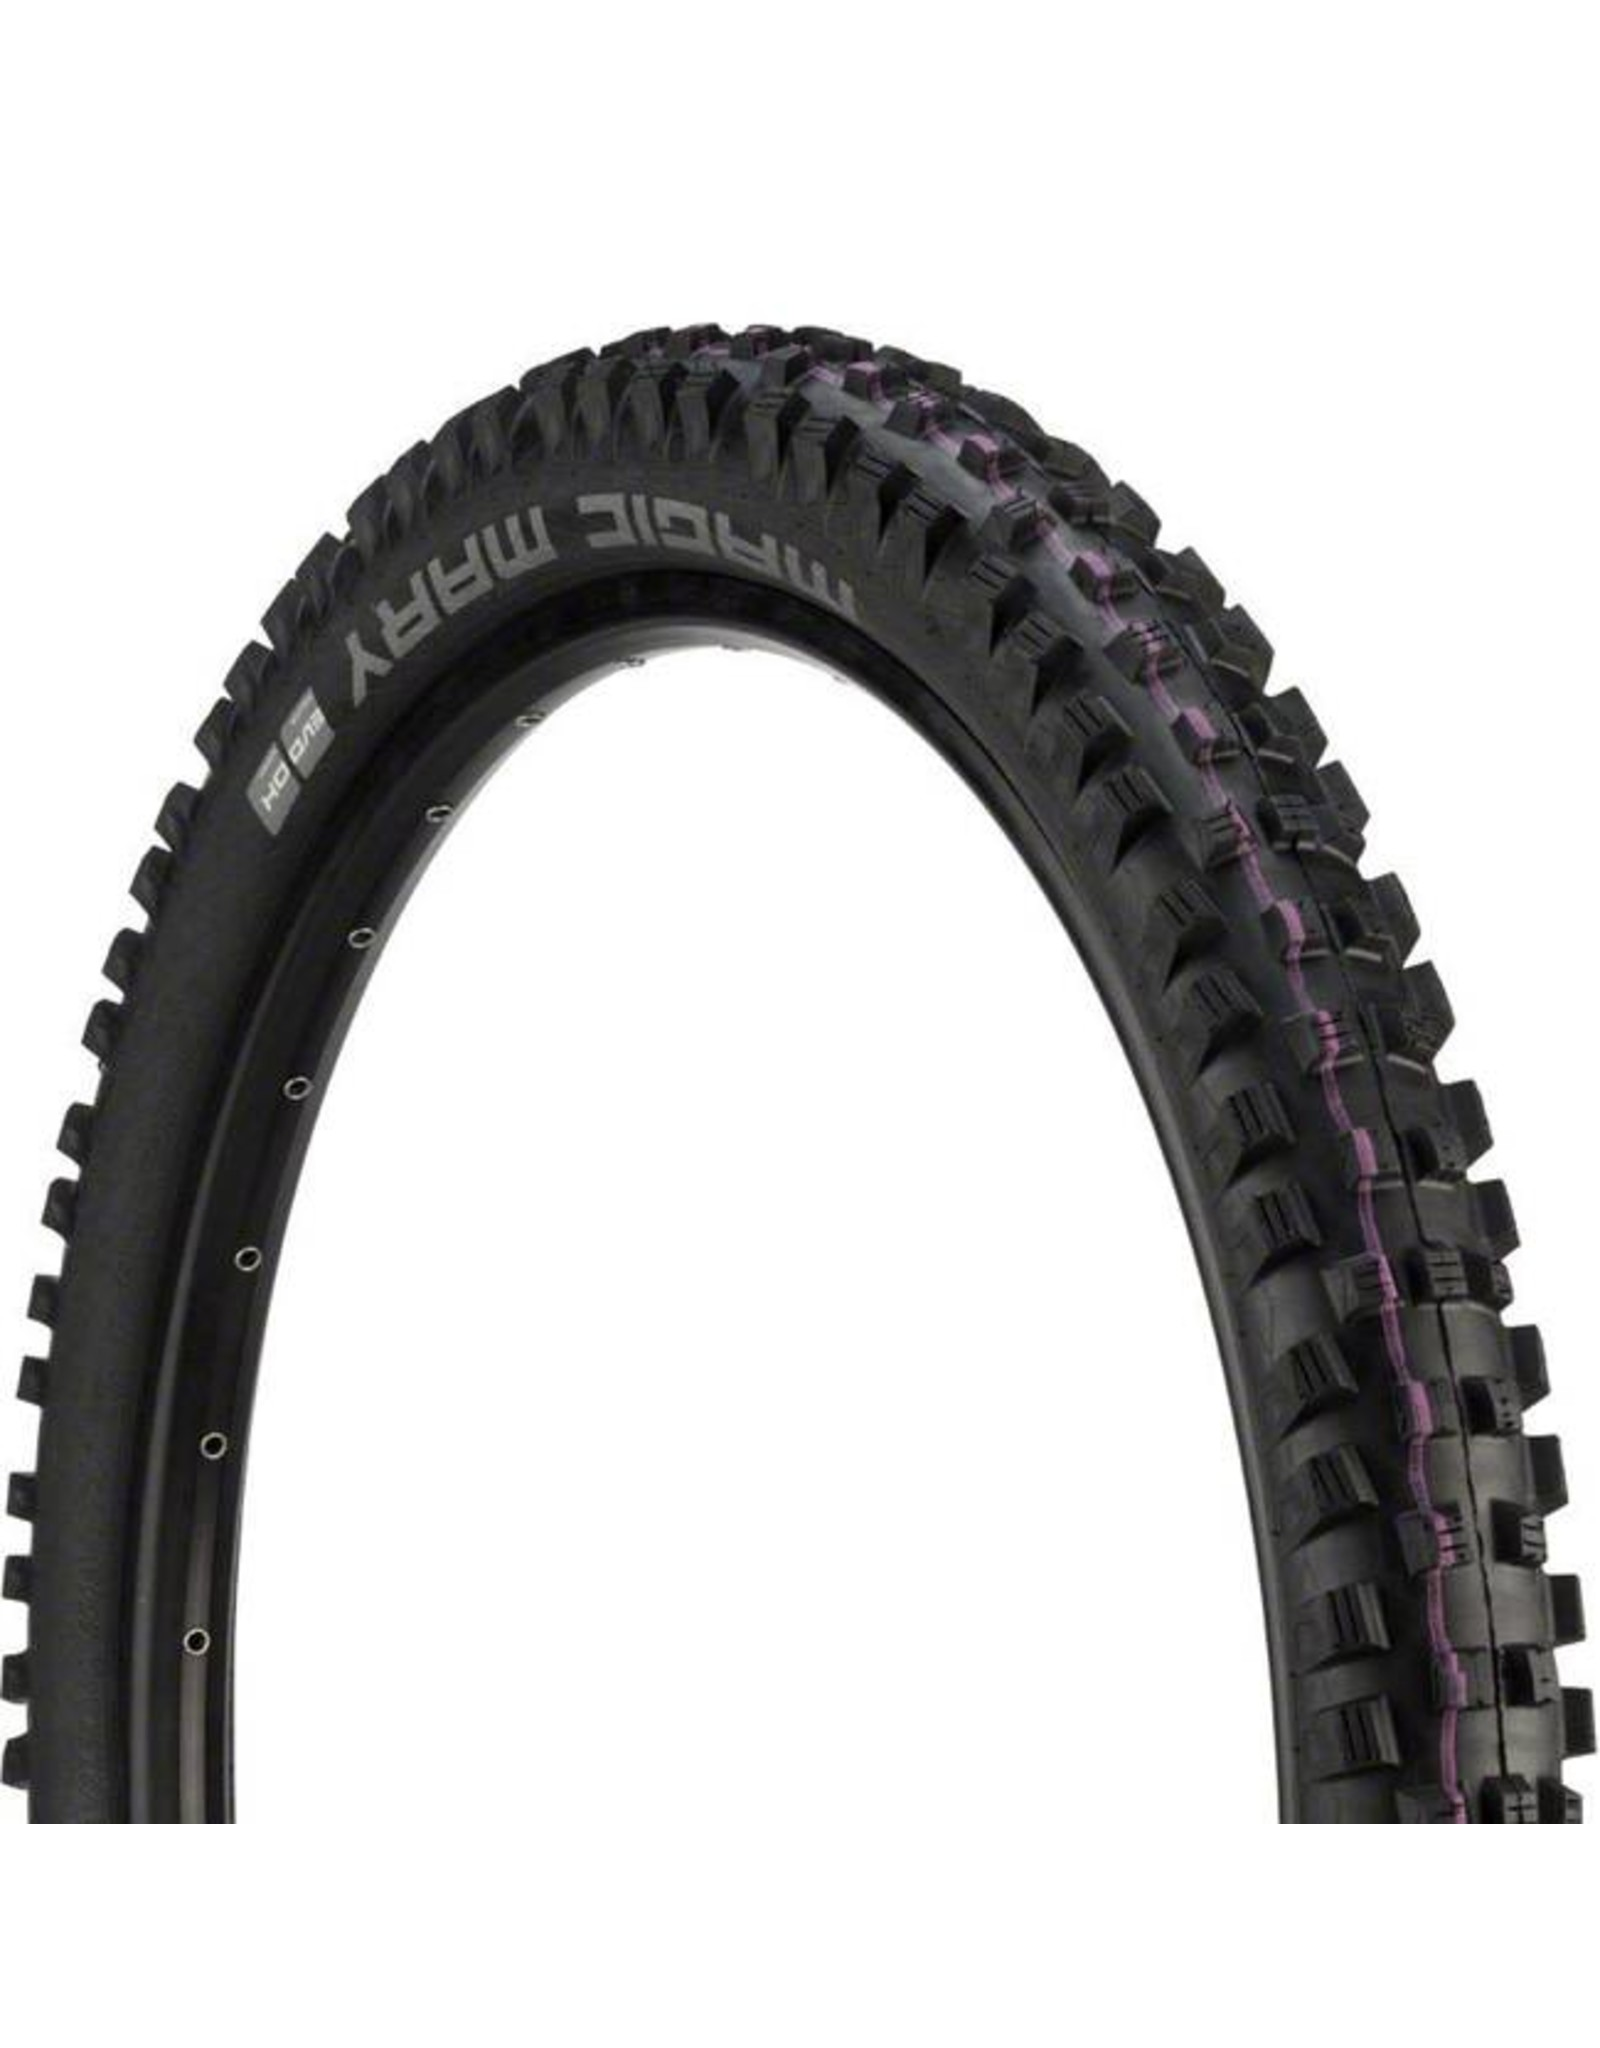 "Schwalbe Schwalbe Magic Mary Tire: 27.5 x 2.60"", Wire Bead, Evolution Line, Addix Ultra Soft Compound, Downhill, Black"